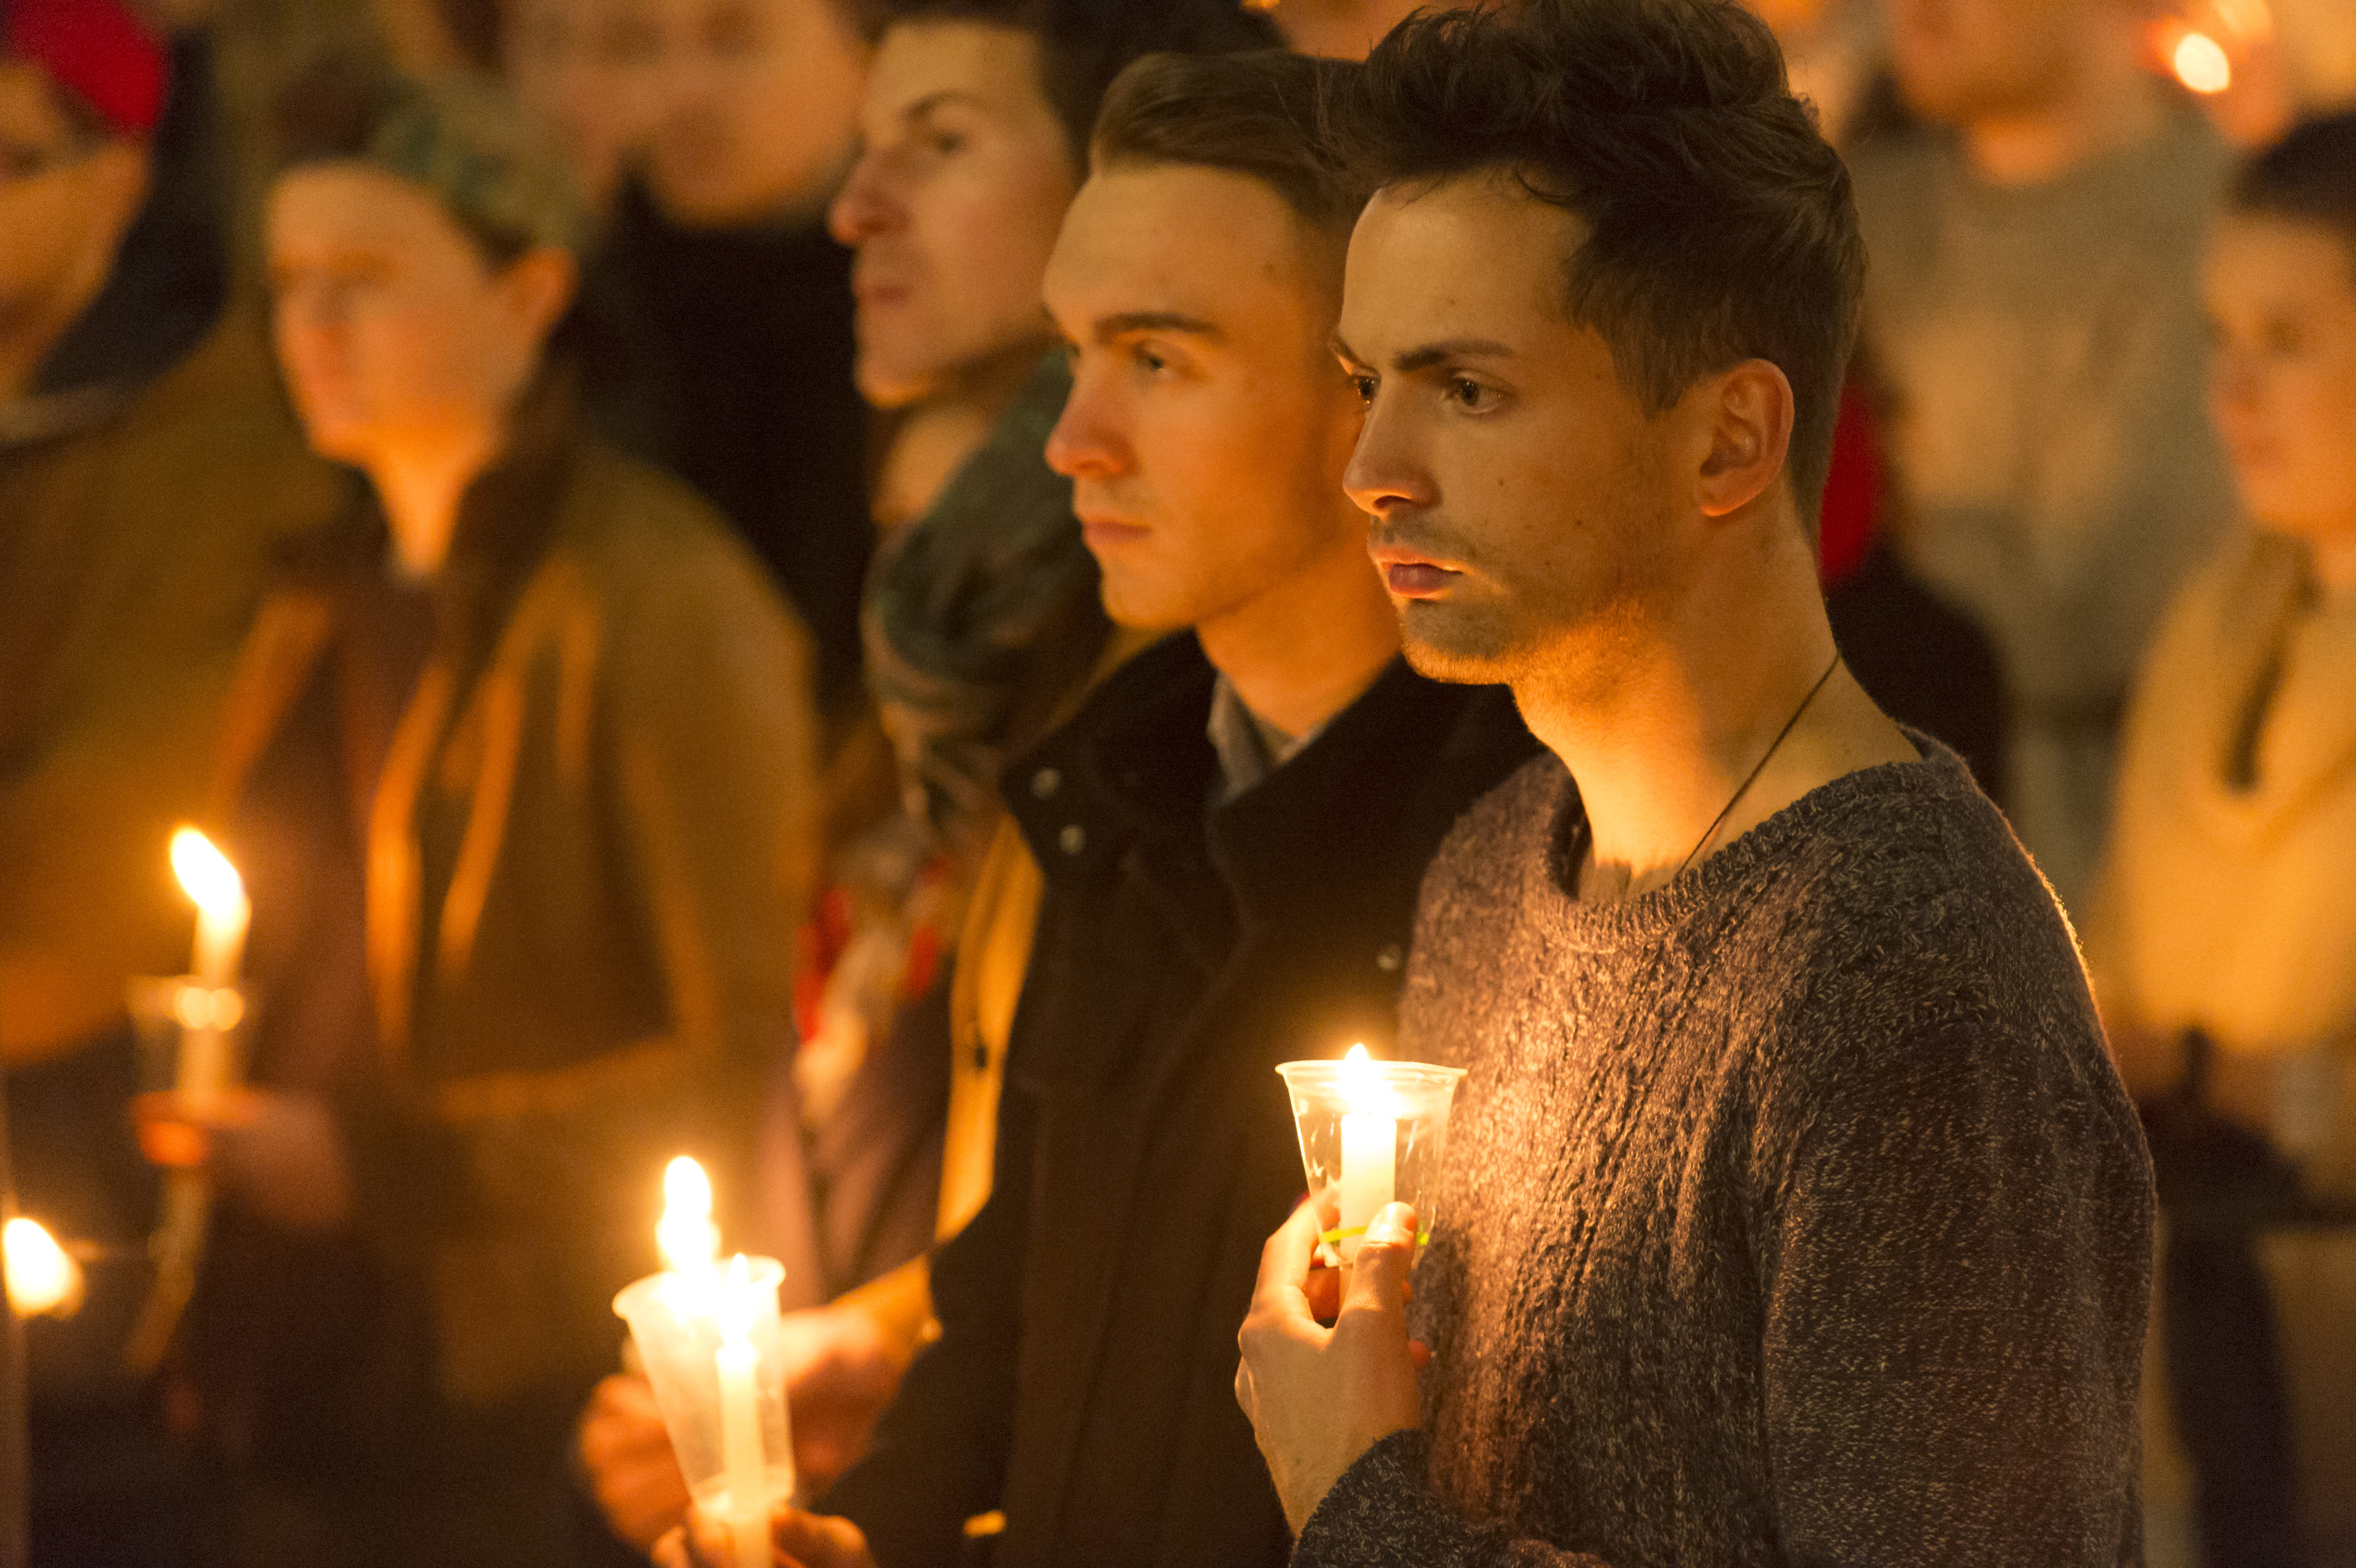 New Zealand Shooter Wikipedia: File:Vigil For Orlando Victims, Wellington, June 13, 2016